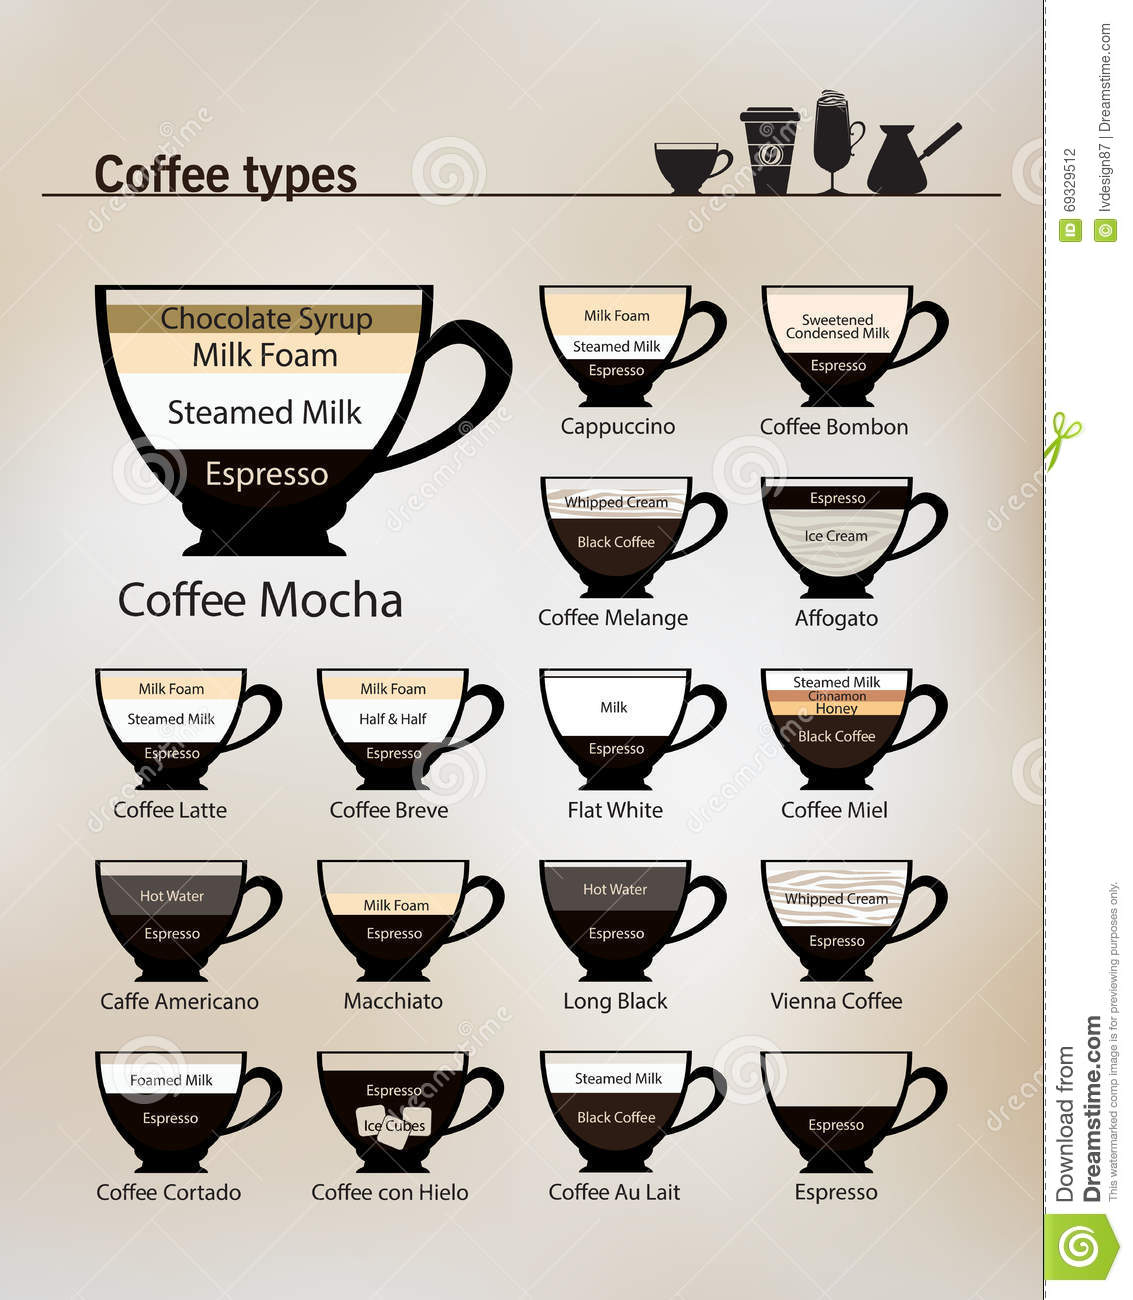 Types Of Coffee Drinks In Australia